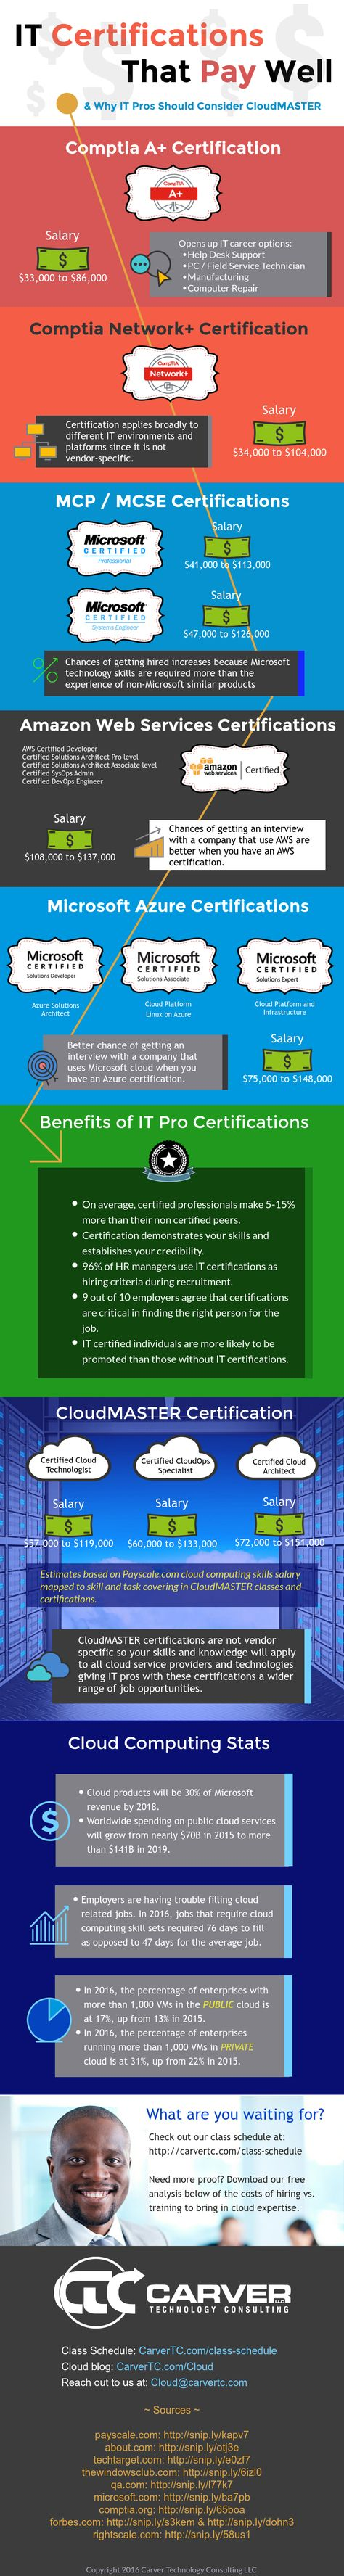 128 best it certifications images on pinterest computer science 128 best it certifications images on pinterest computer science computers and computer programming 1betcityfo Images